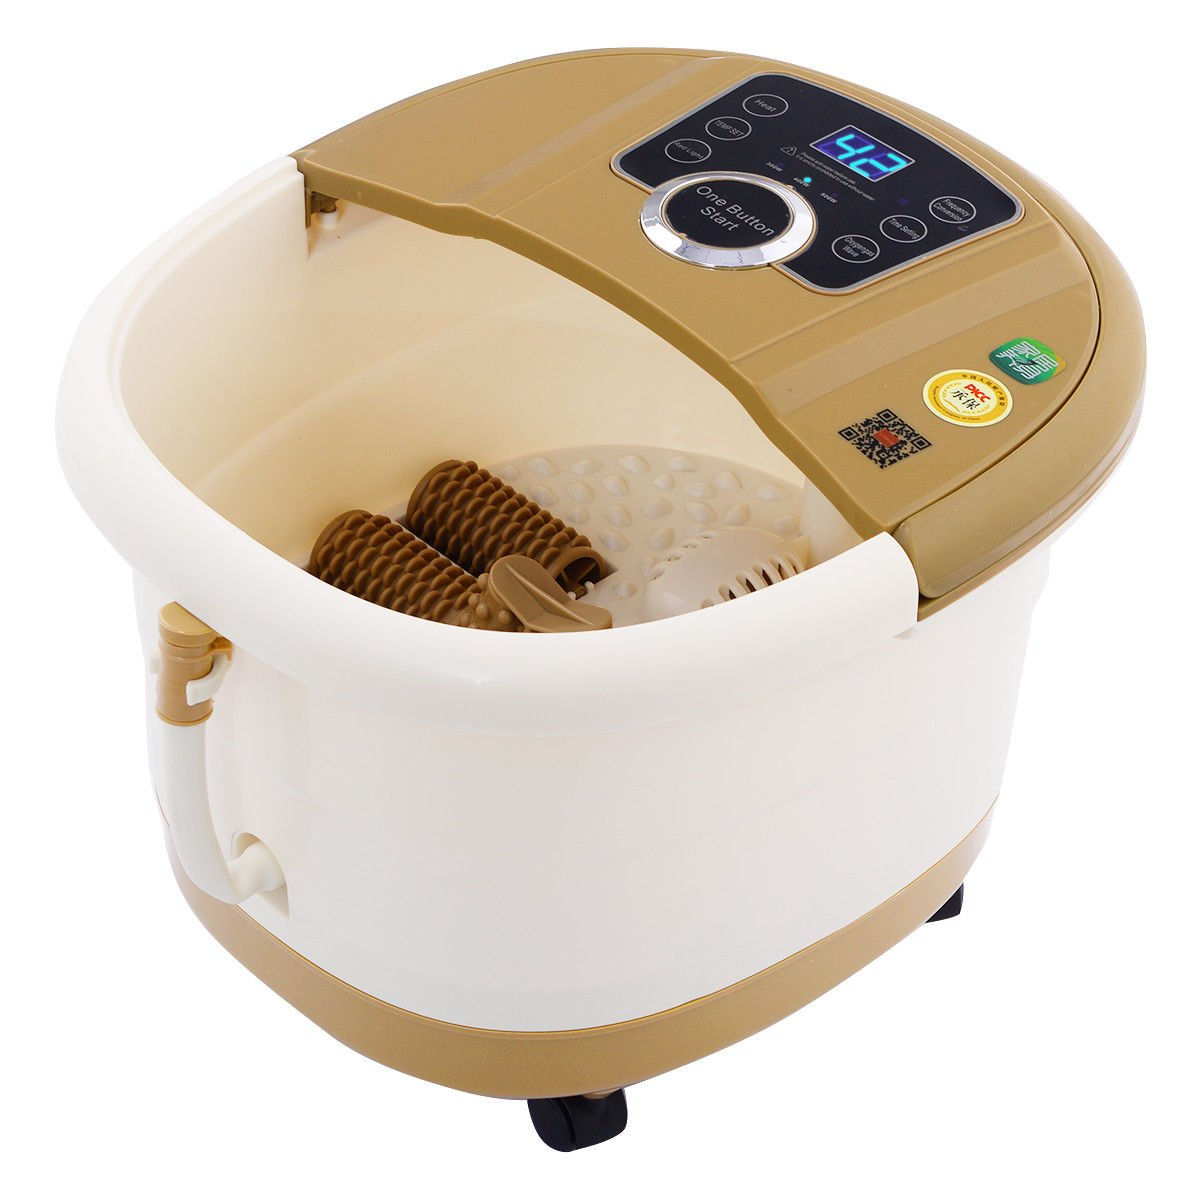 Giantex Portable Foot Spa Bath Massager Bubble Heat LED Display Infrared Relax AL